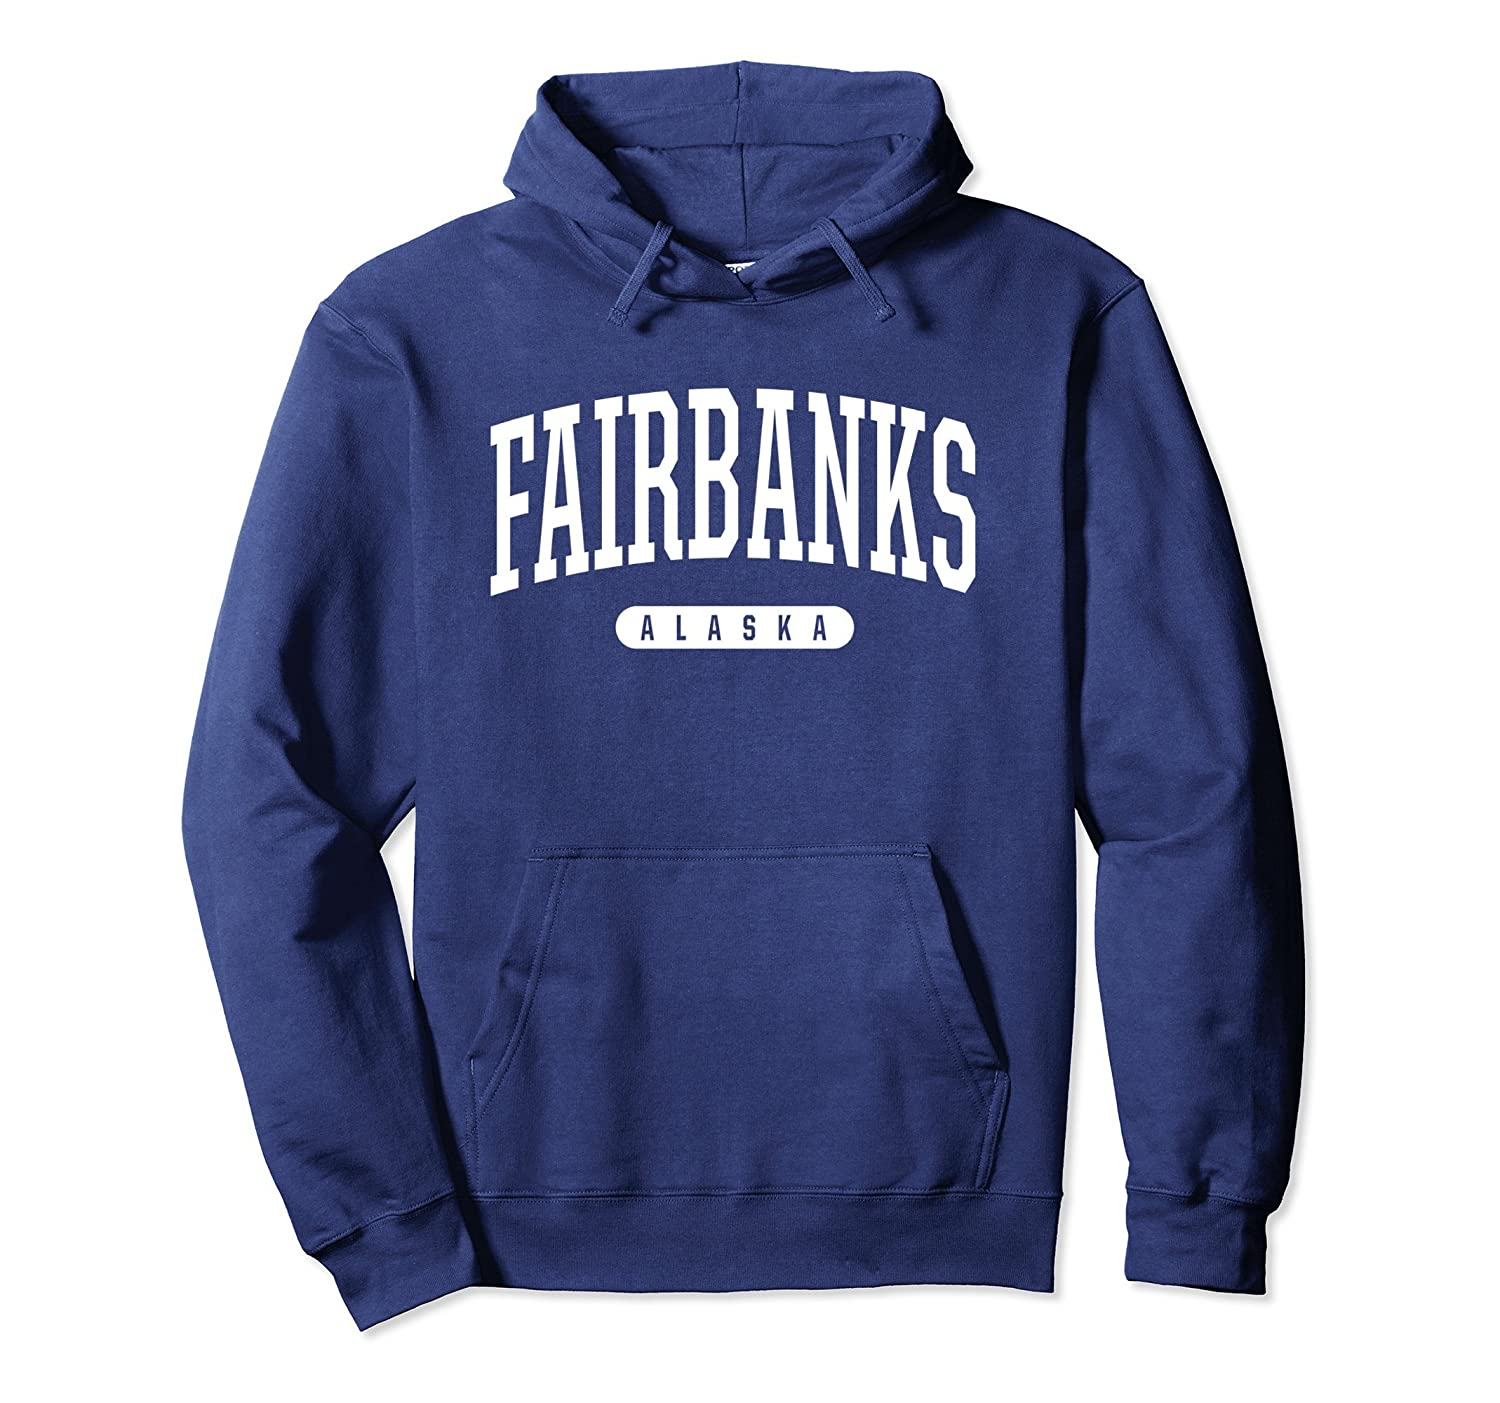 Fairbanks Hoodie Sweatshirt College University Style AK USA-Colonhue